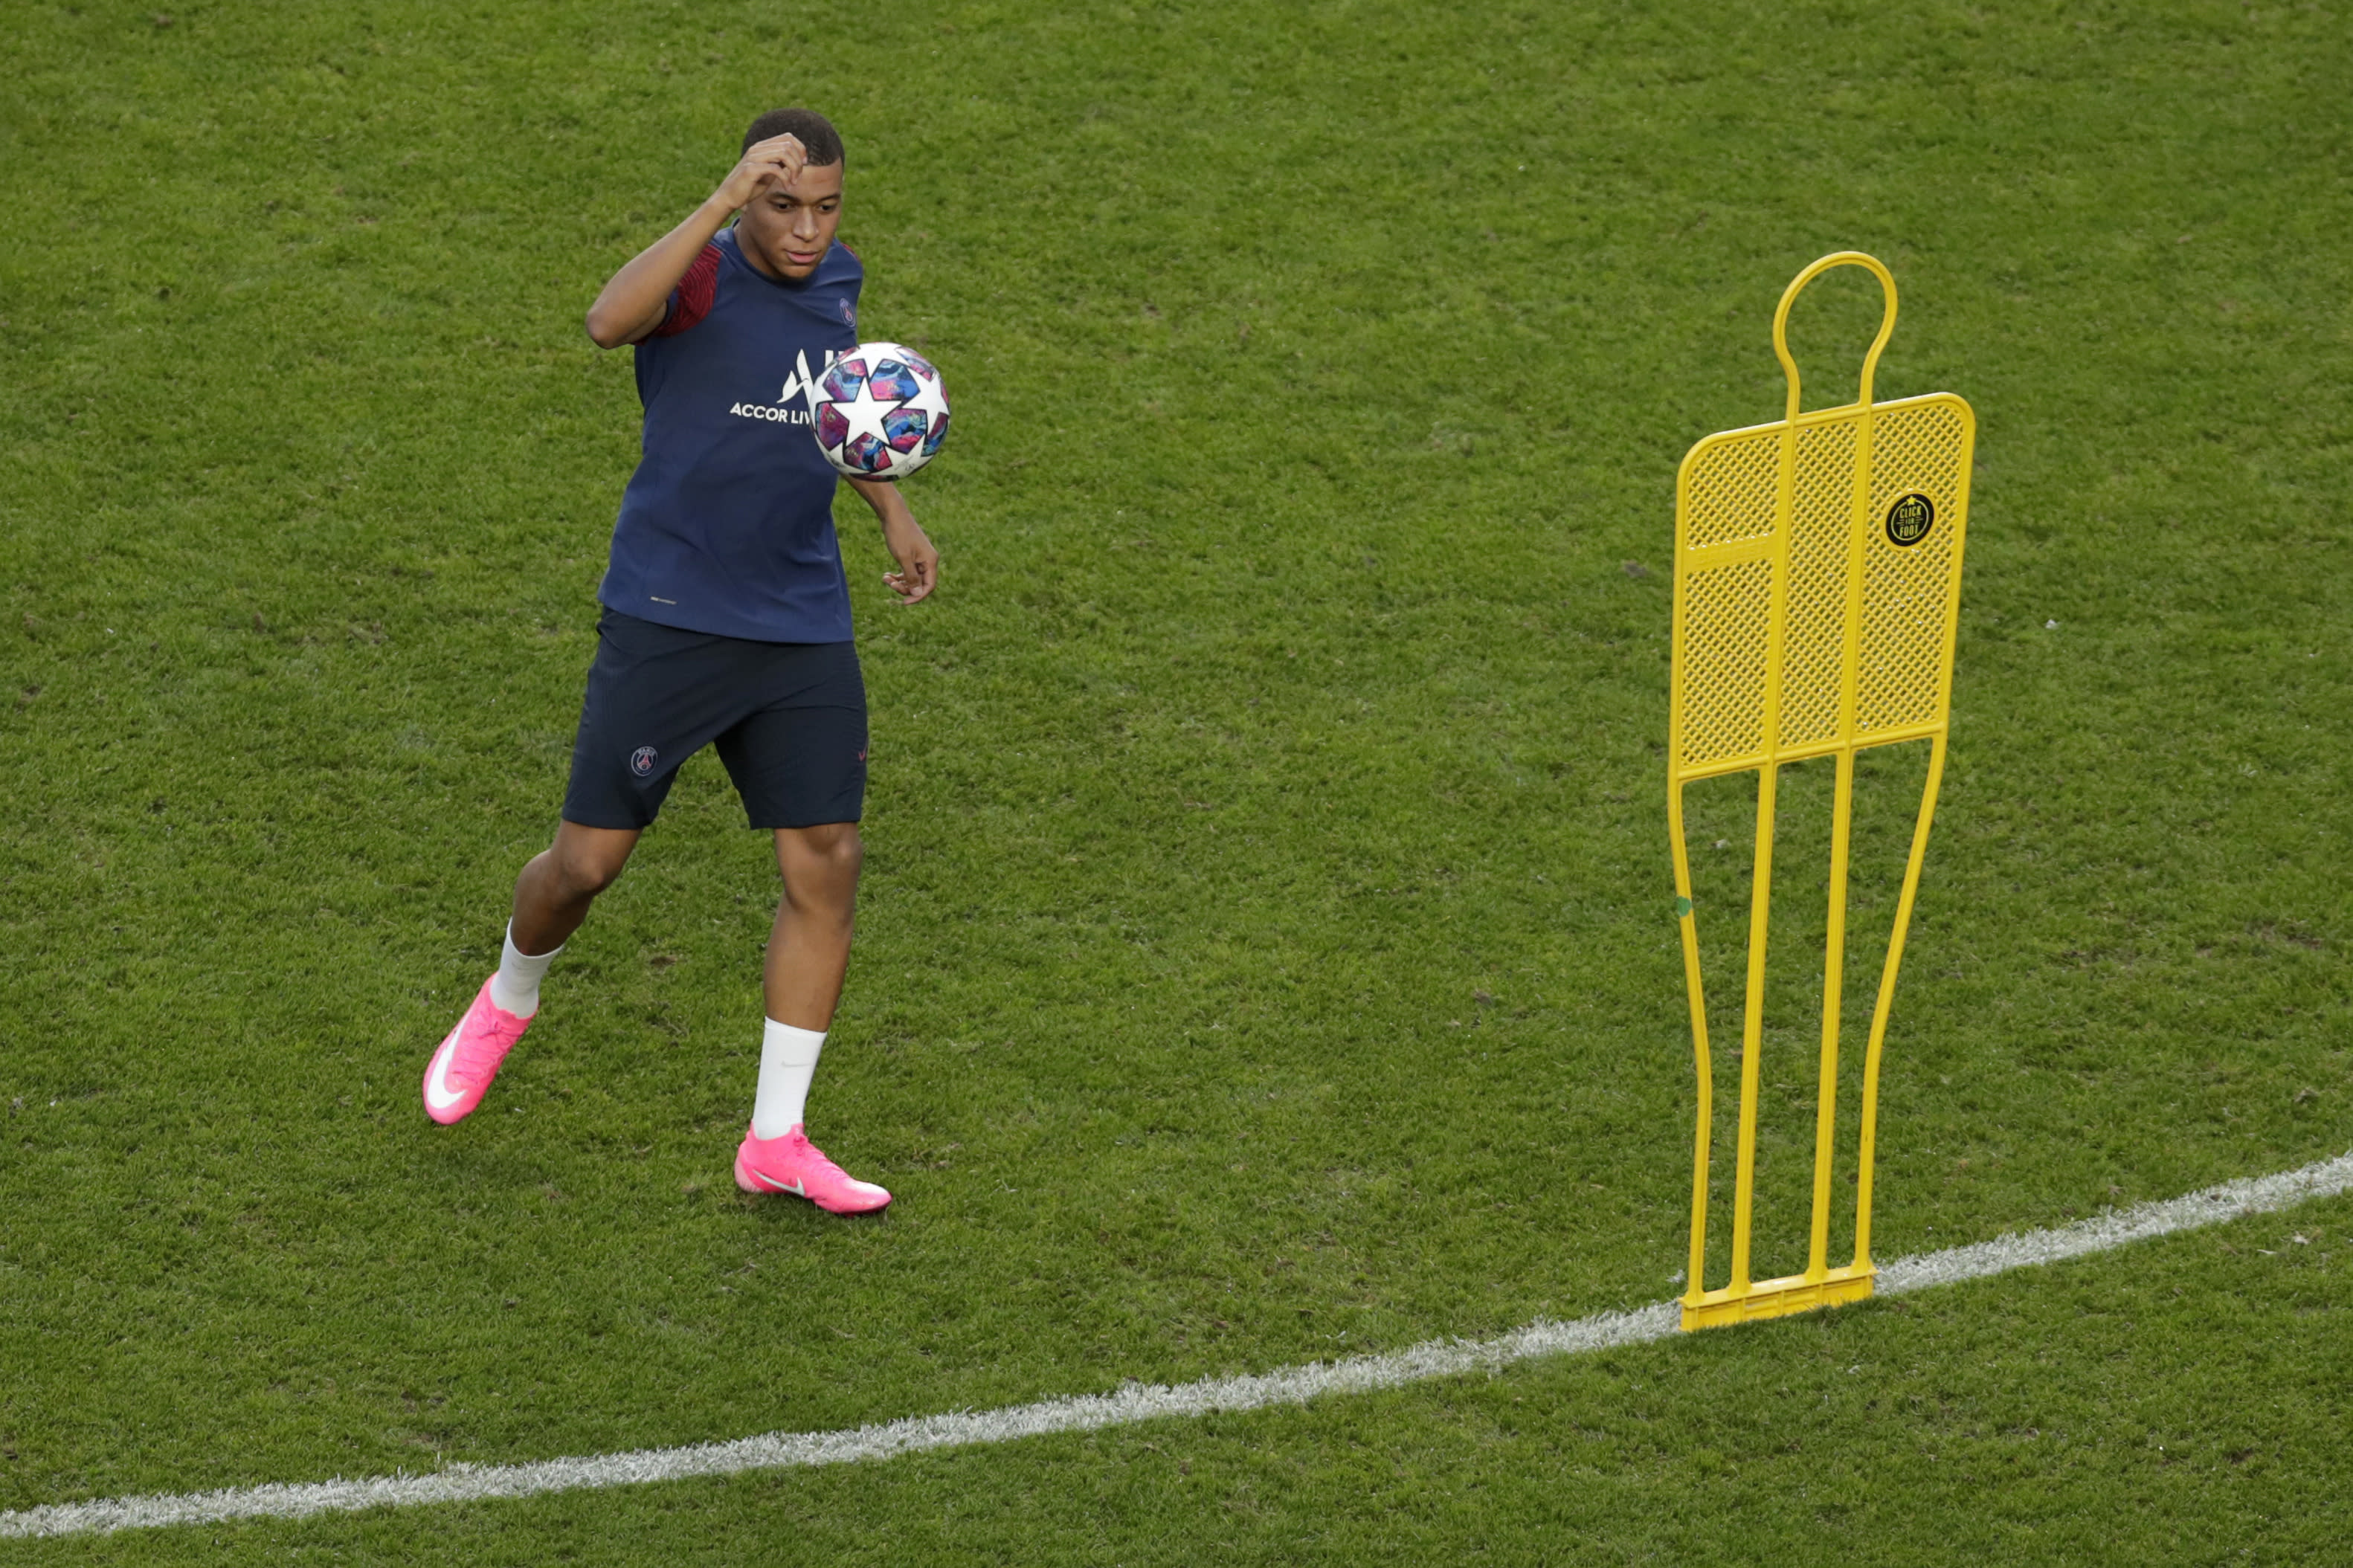 PSG's Kylian Mbappe plays with a ball during a training session at the Luz stadium in Lisbon, Saturday Aug. 22, 2020. PSG will play Bayern Munich in the Champions League final soccer match on Sunday. AP Photo/Manu Fernandez, Pool)